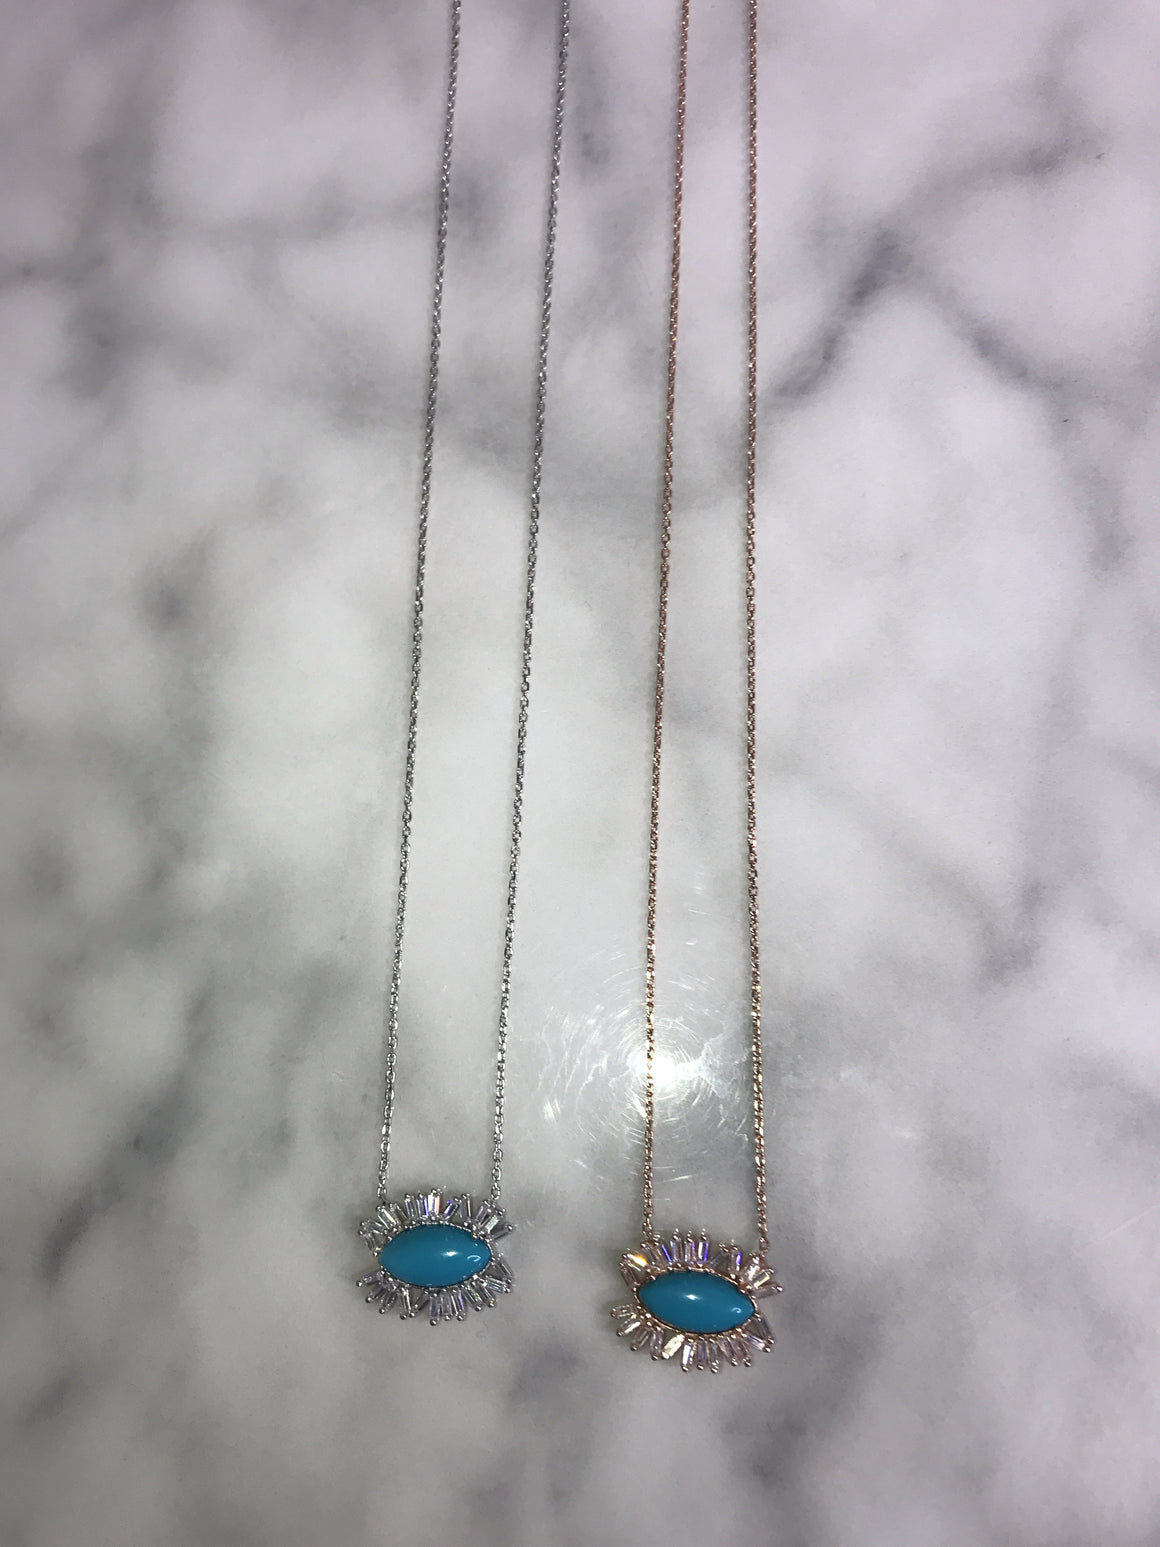 Blue Eye Baguette Necklace